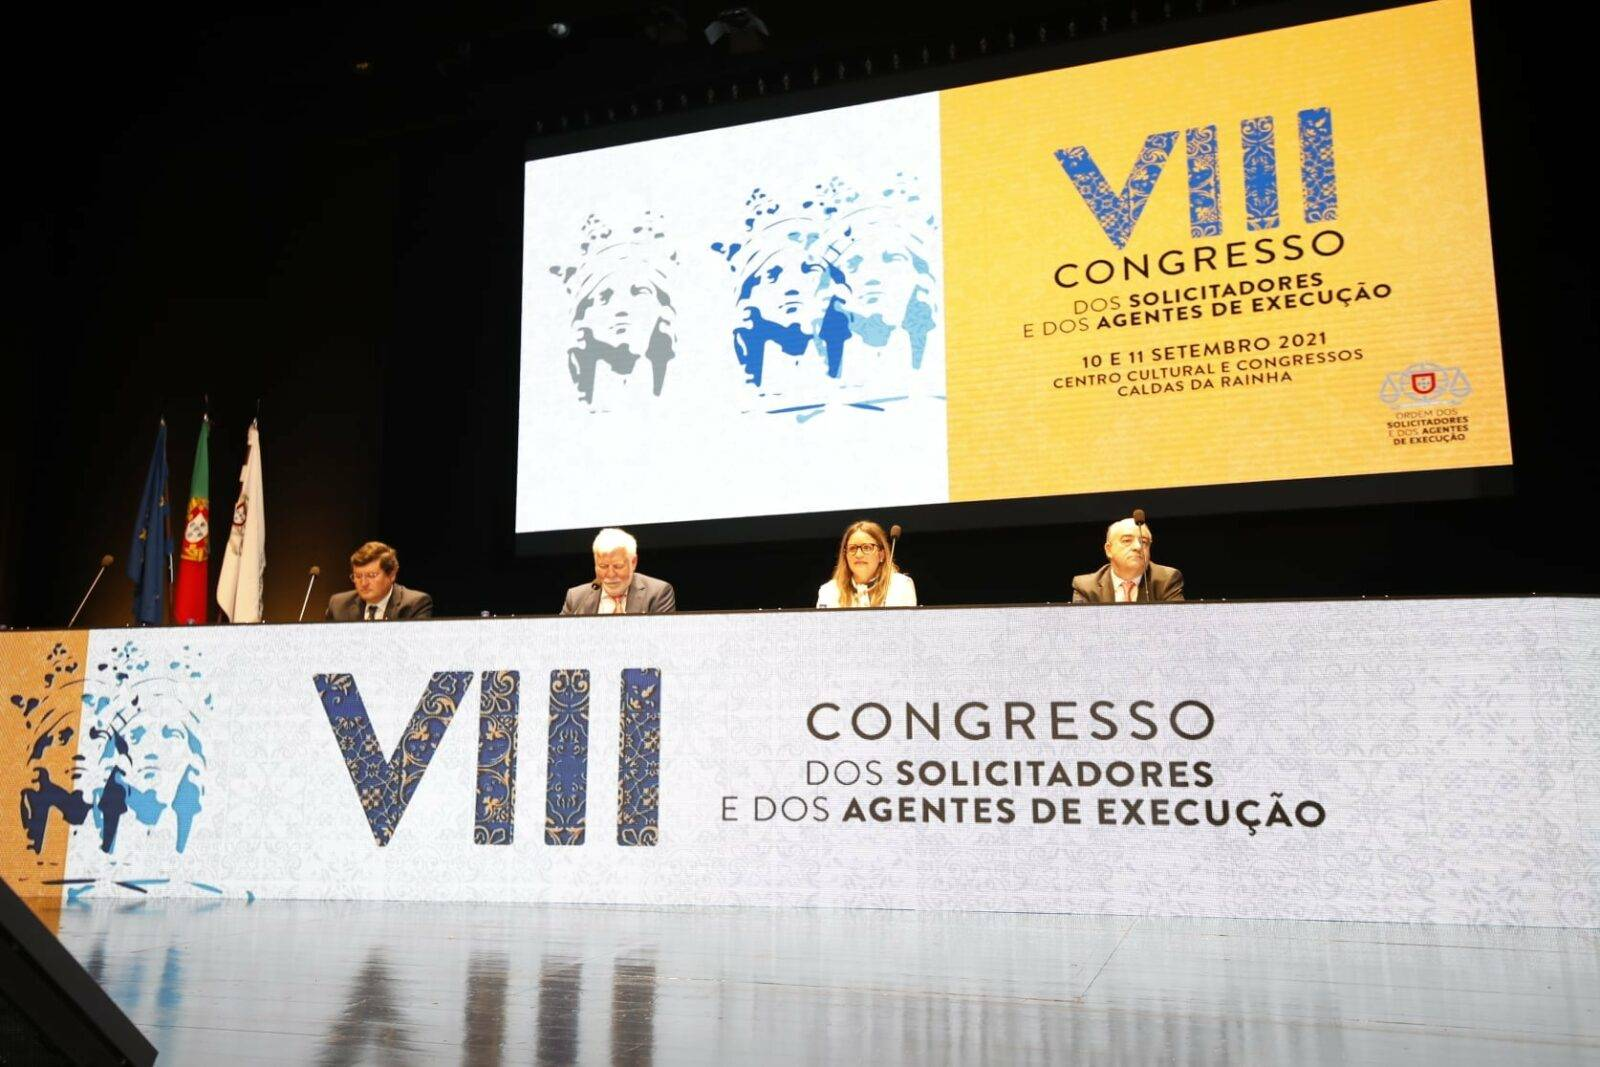 VIII Congress of Solicitors and Enforcement Agents of Portugal: technology, innovation and the future under debate